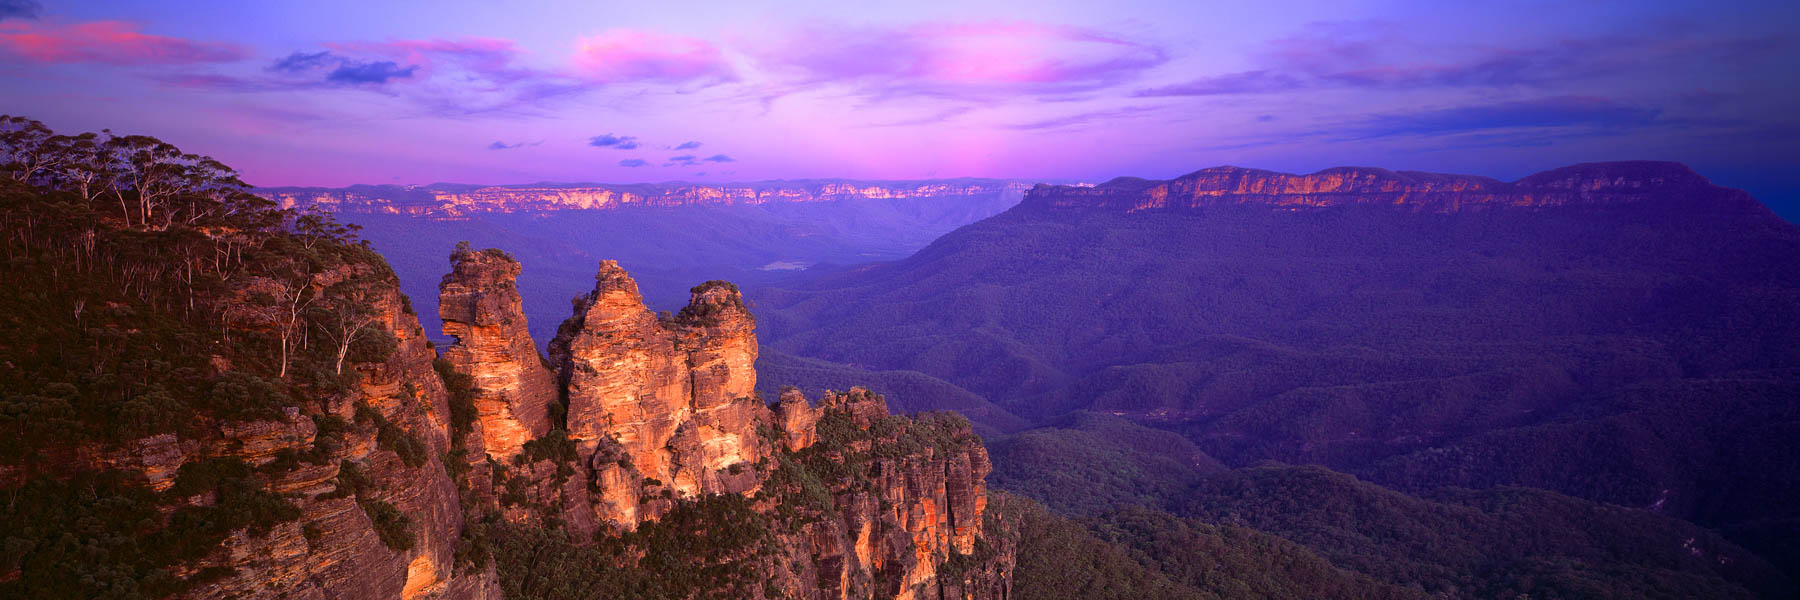 The glow of sunset lighting up The Three Sisters, The Blue Mountains, NSW, Australia.